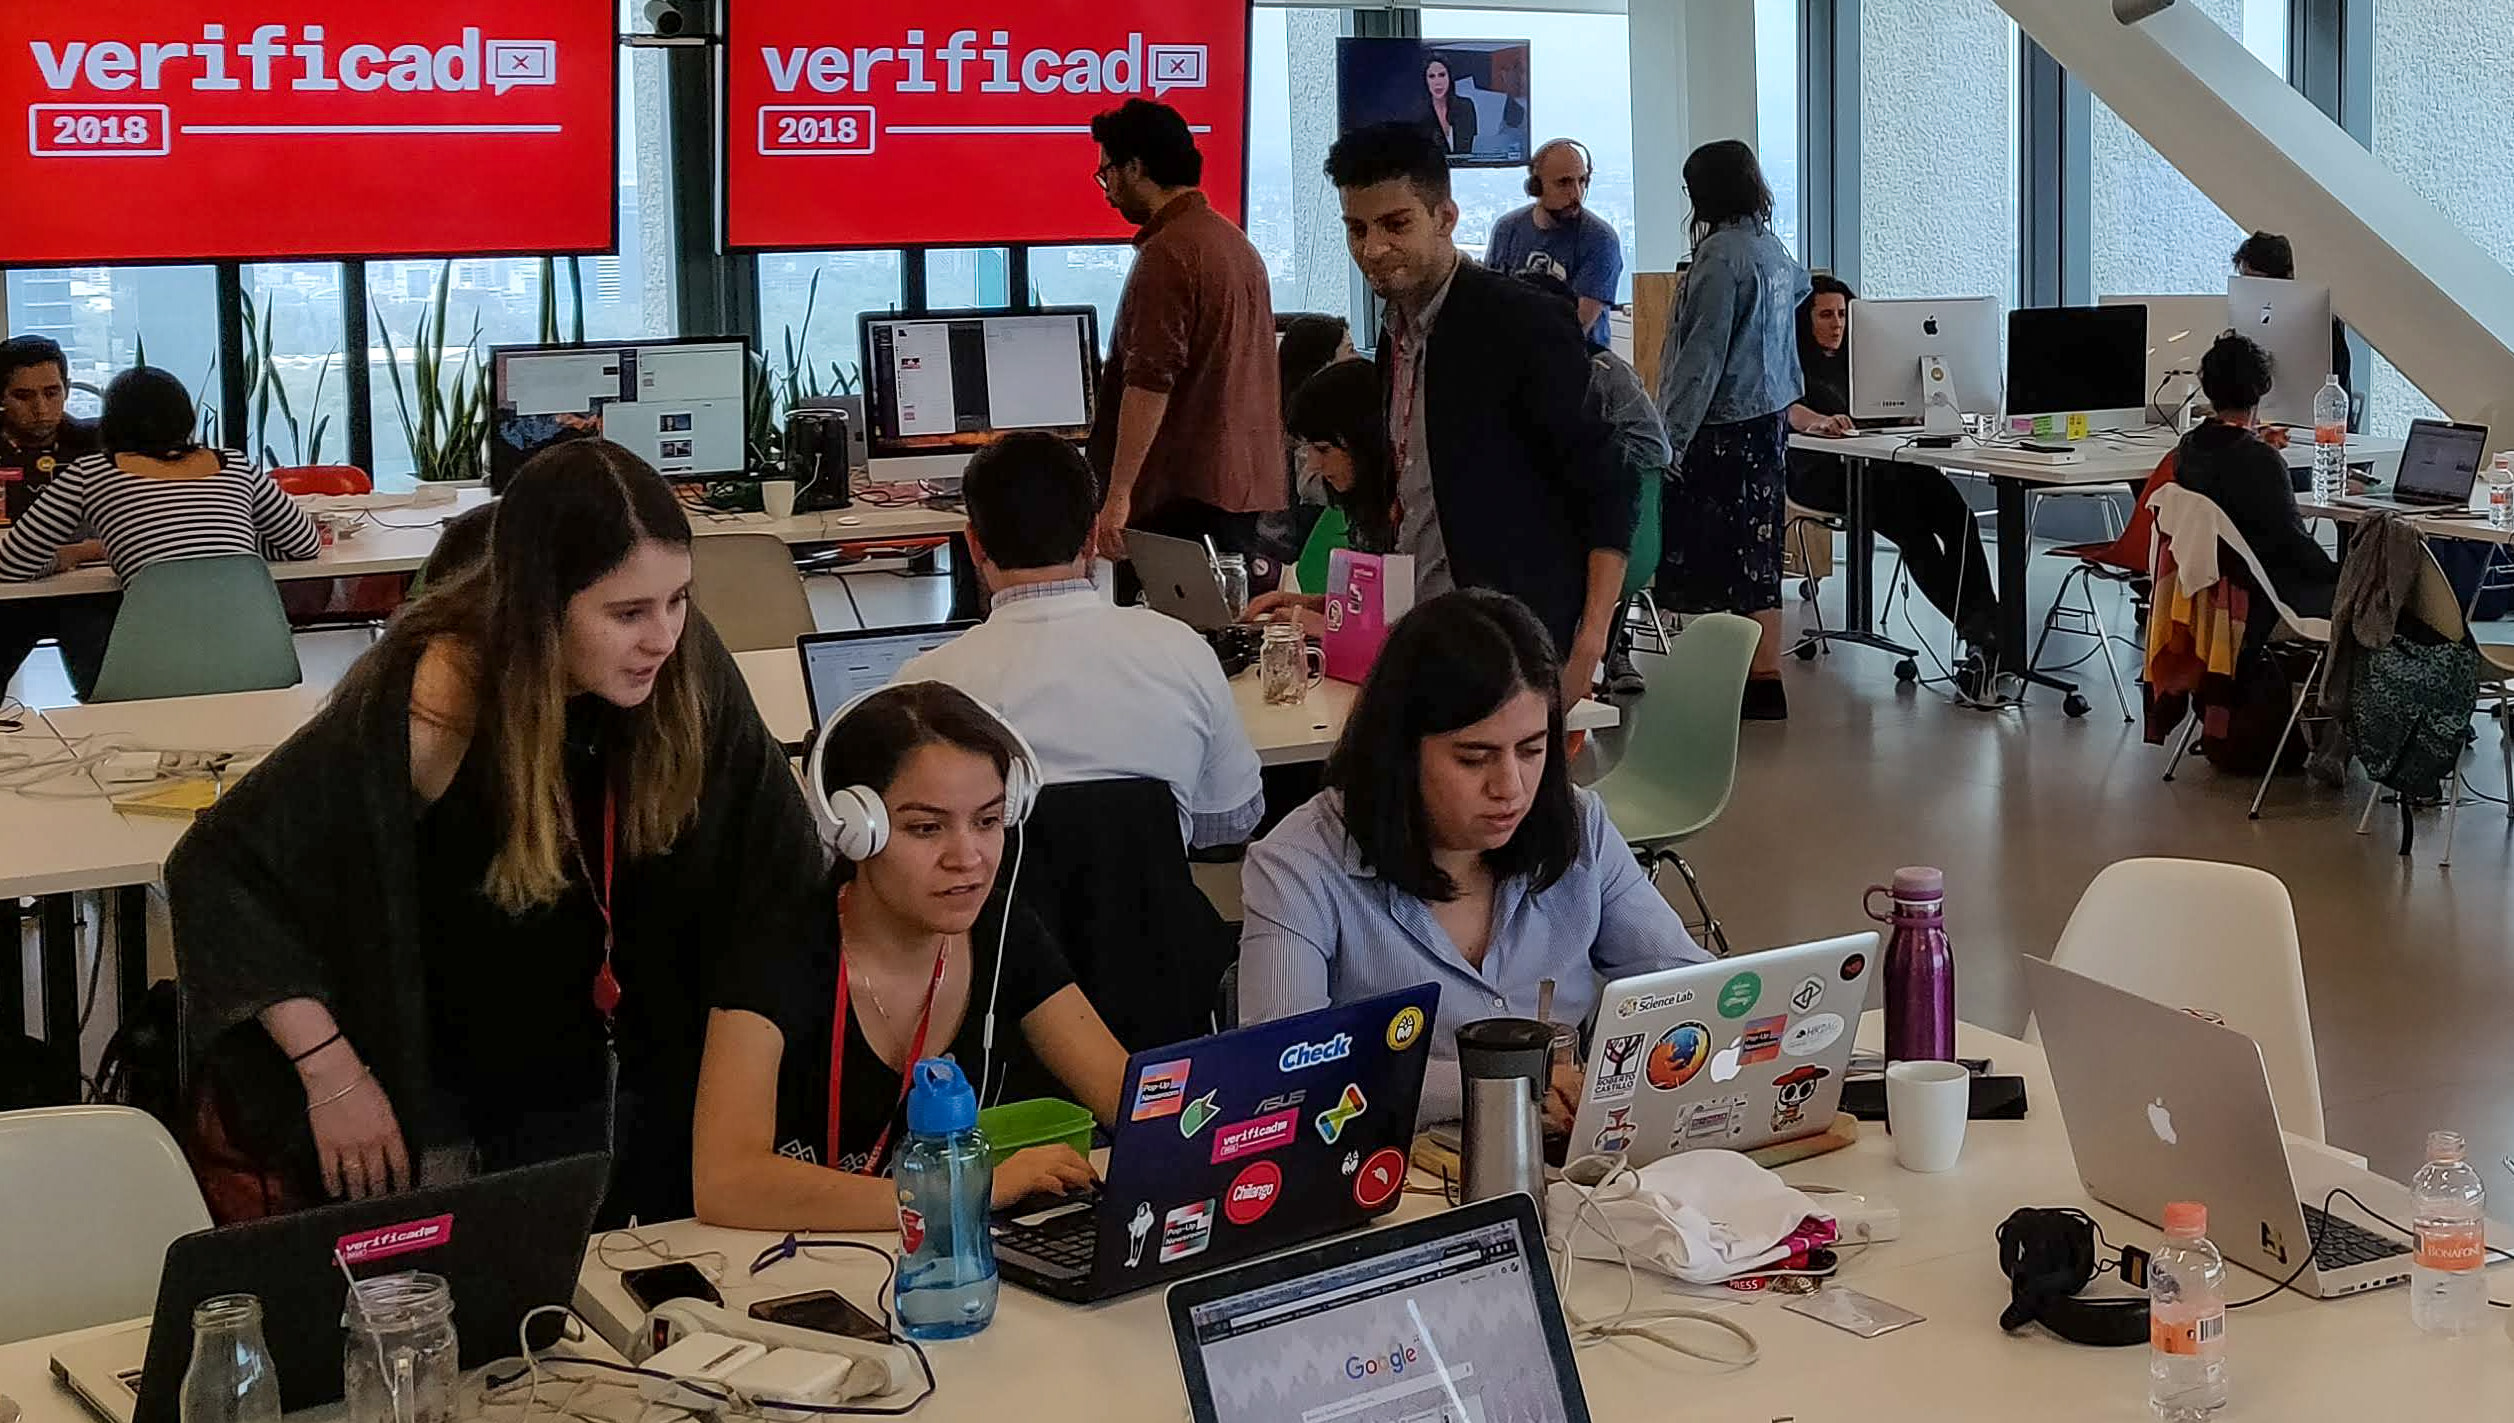 The Verificado 2018 newsroom, developed by Pop Up Newsroom, AJ+ and Animal Politico. Photo by Fergus Bell.